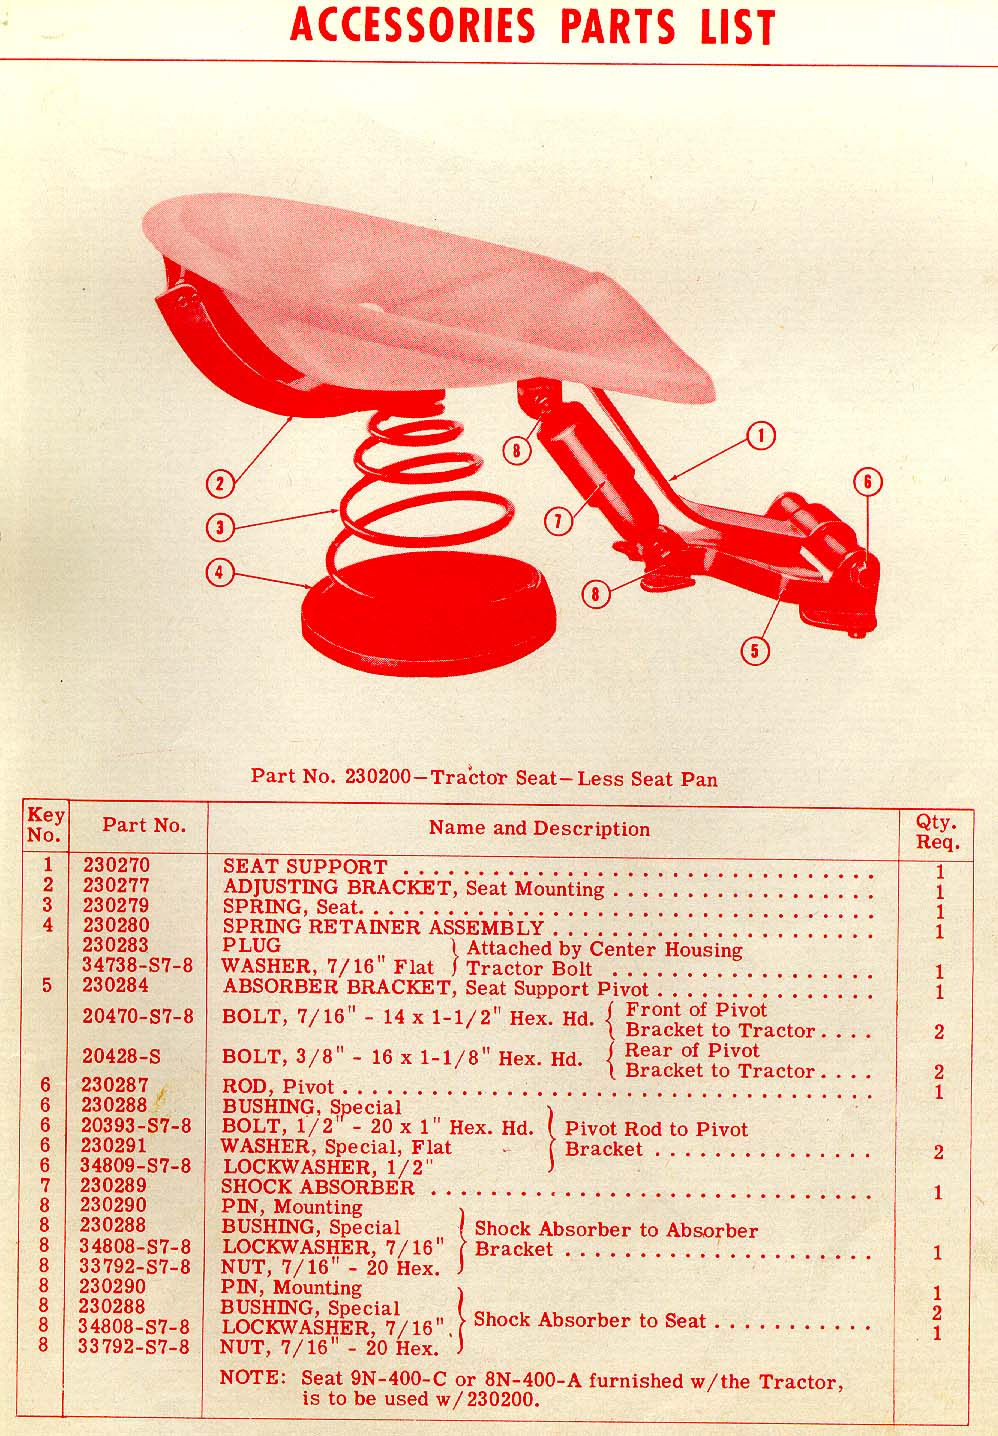 January 1950 Accessories Parts List